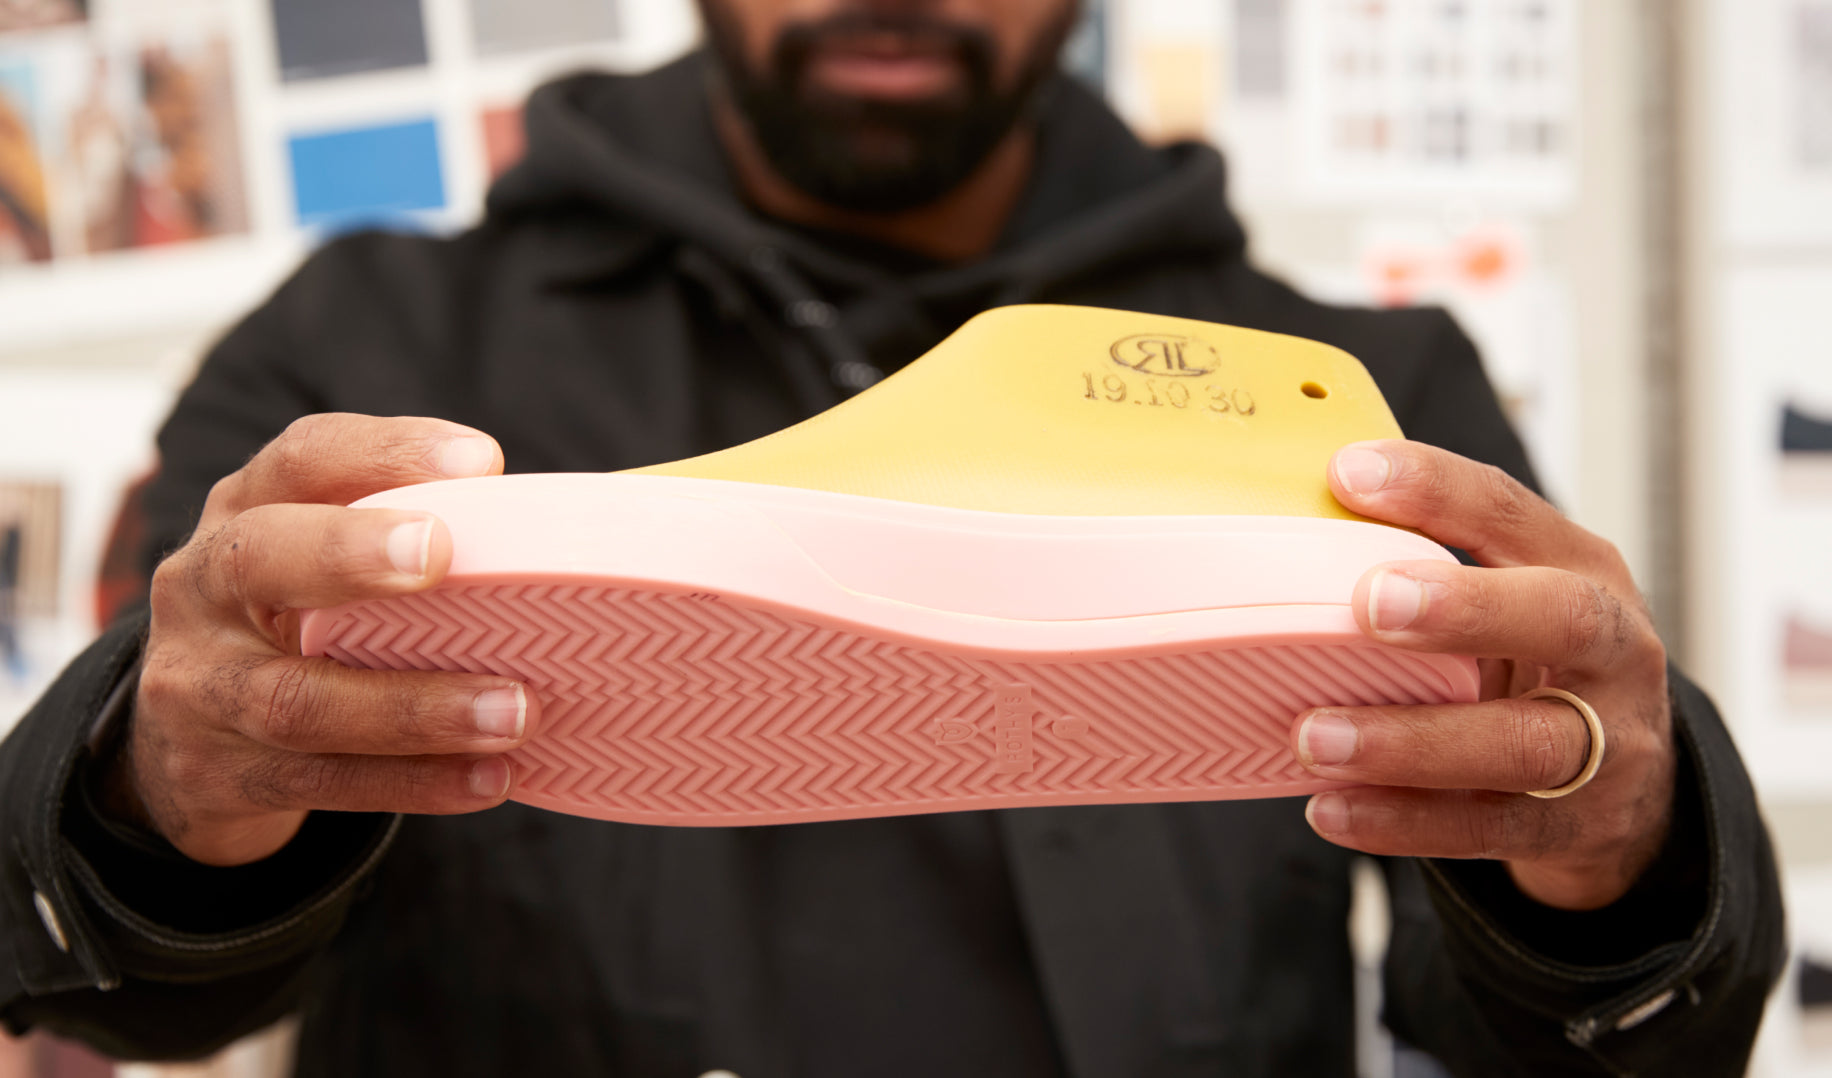 Close up of Lavion holding up a shoe prototype.